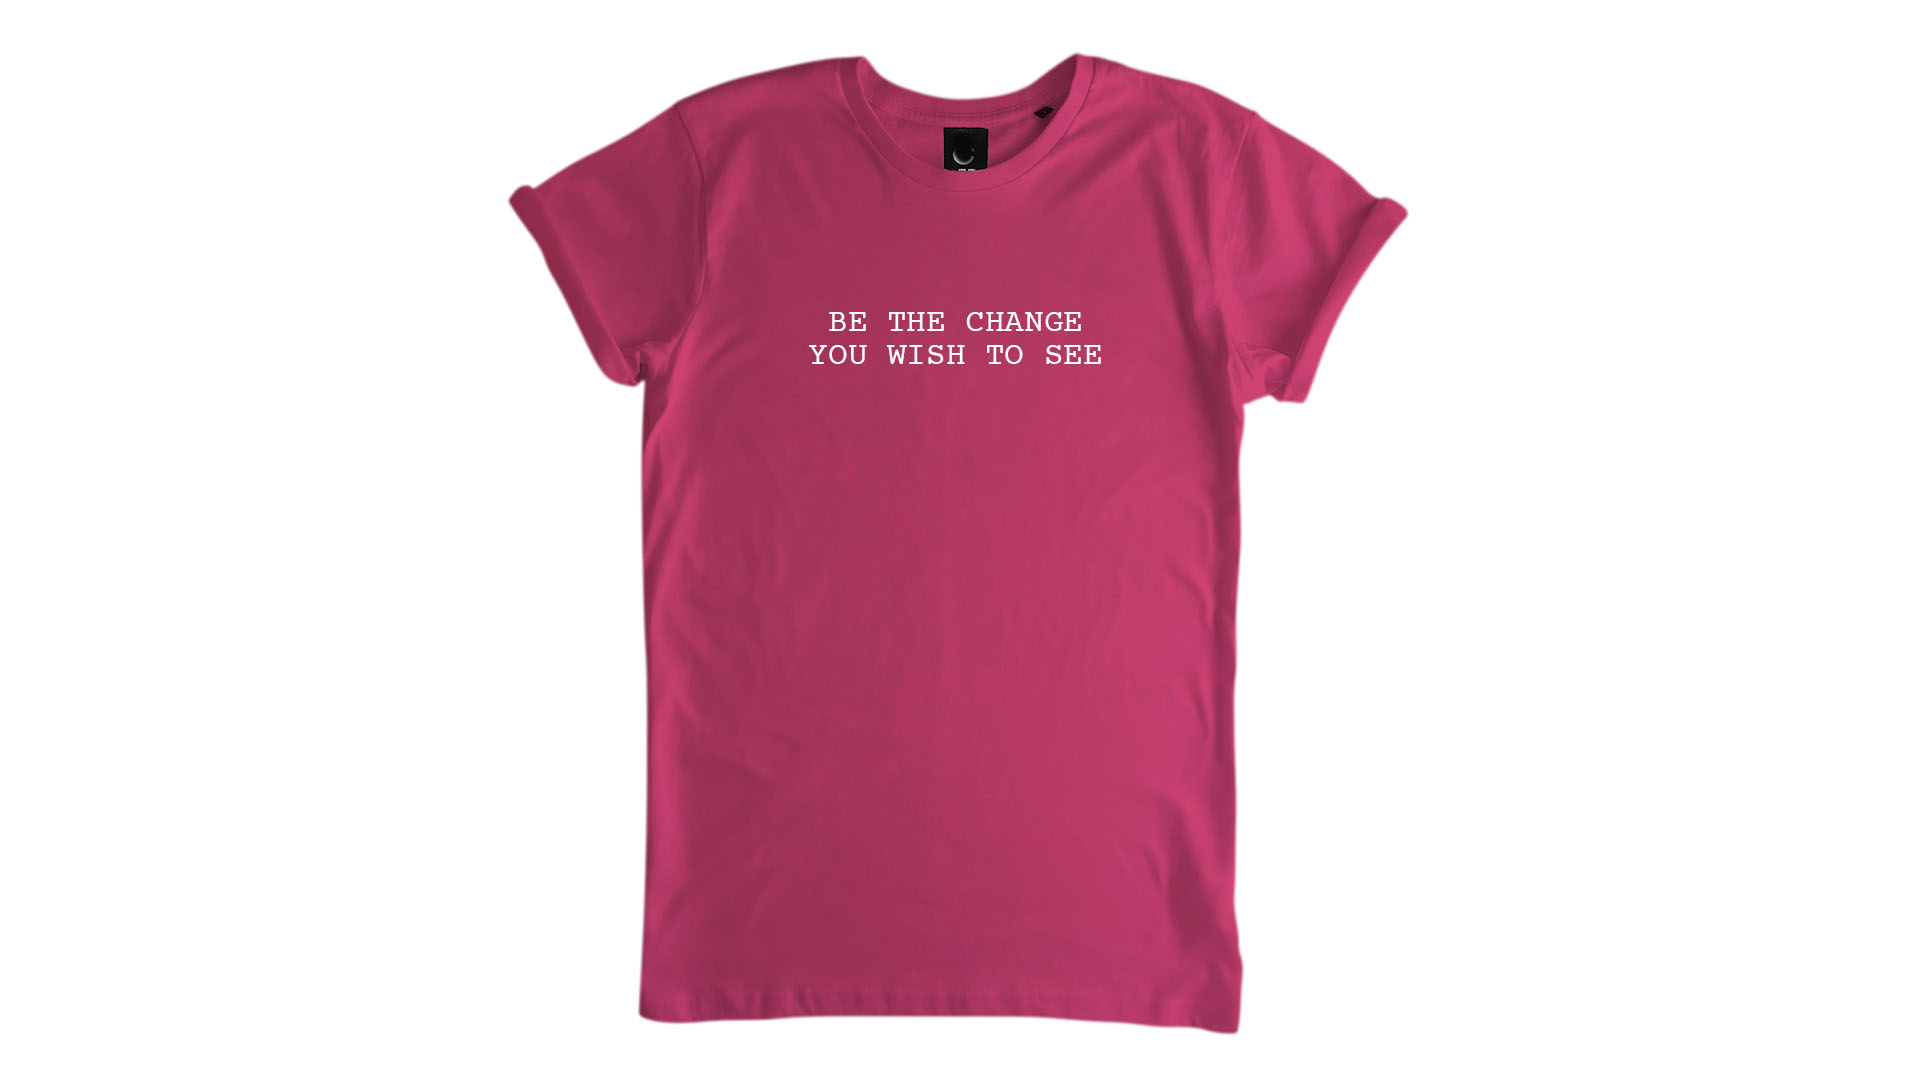 LiveLearn.Yoga Yoga T-Shirt Organic Cotton Be the Change You Wish to See Pink